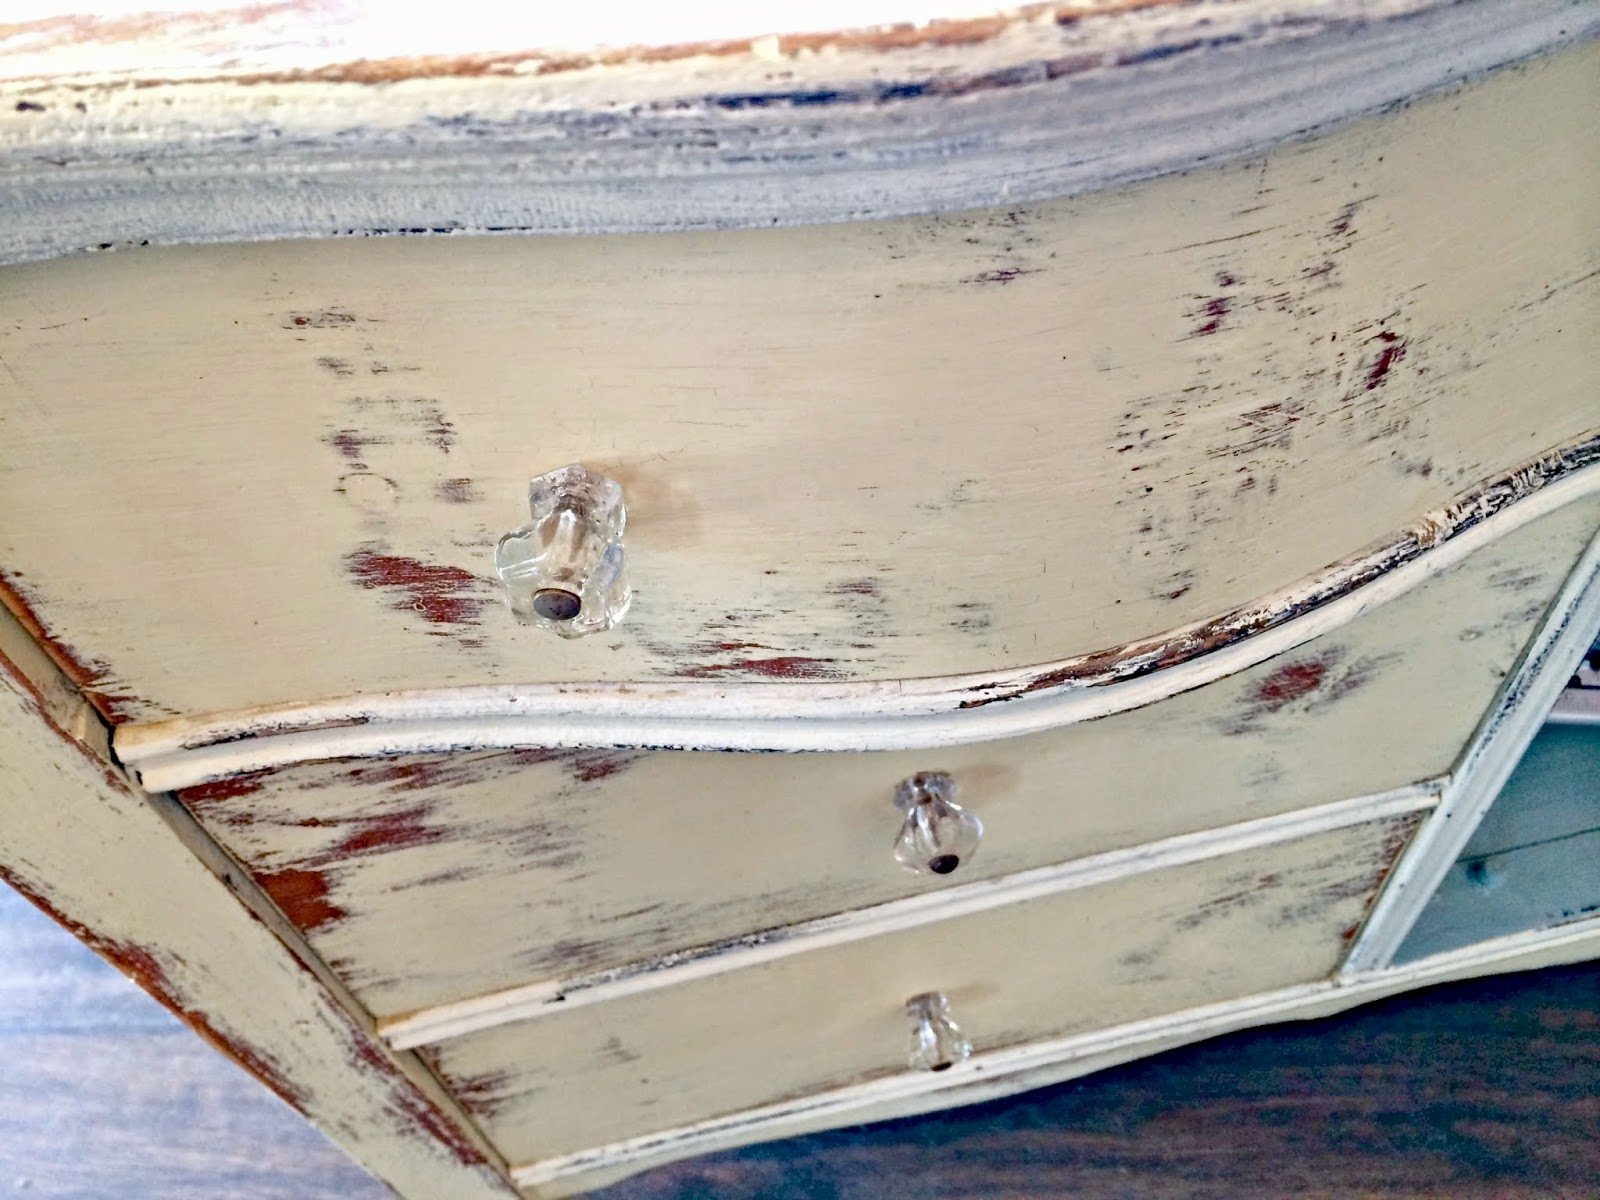 Purchase annie sloan chalk paint - Purchase Annie Sloan Chalk Paint Here Are More Completed Pieces That Are Available For Purchase